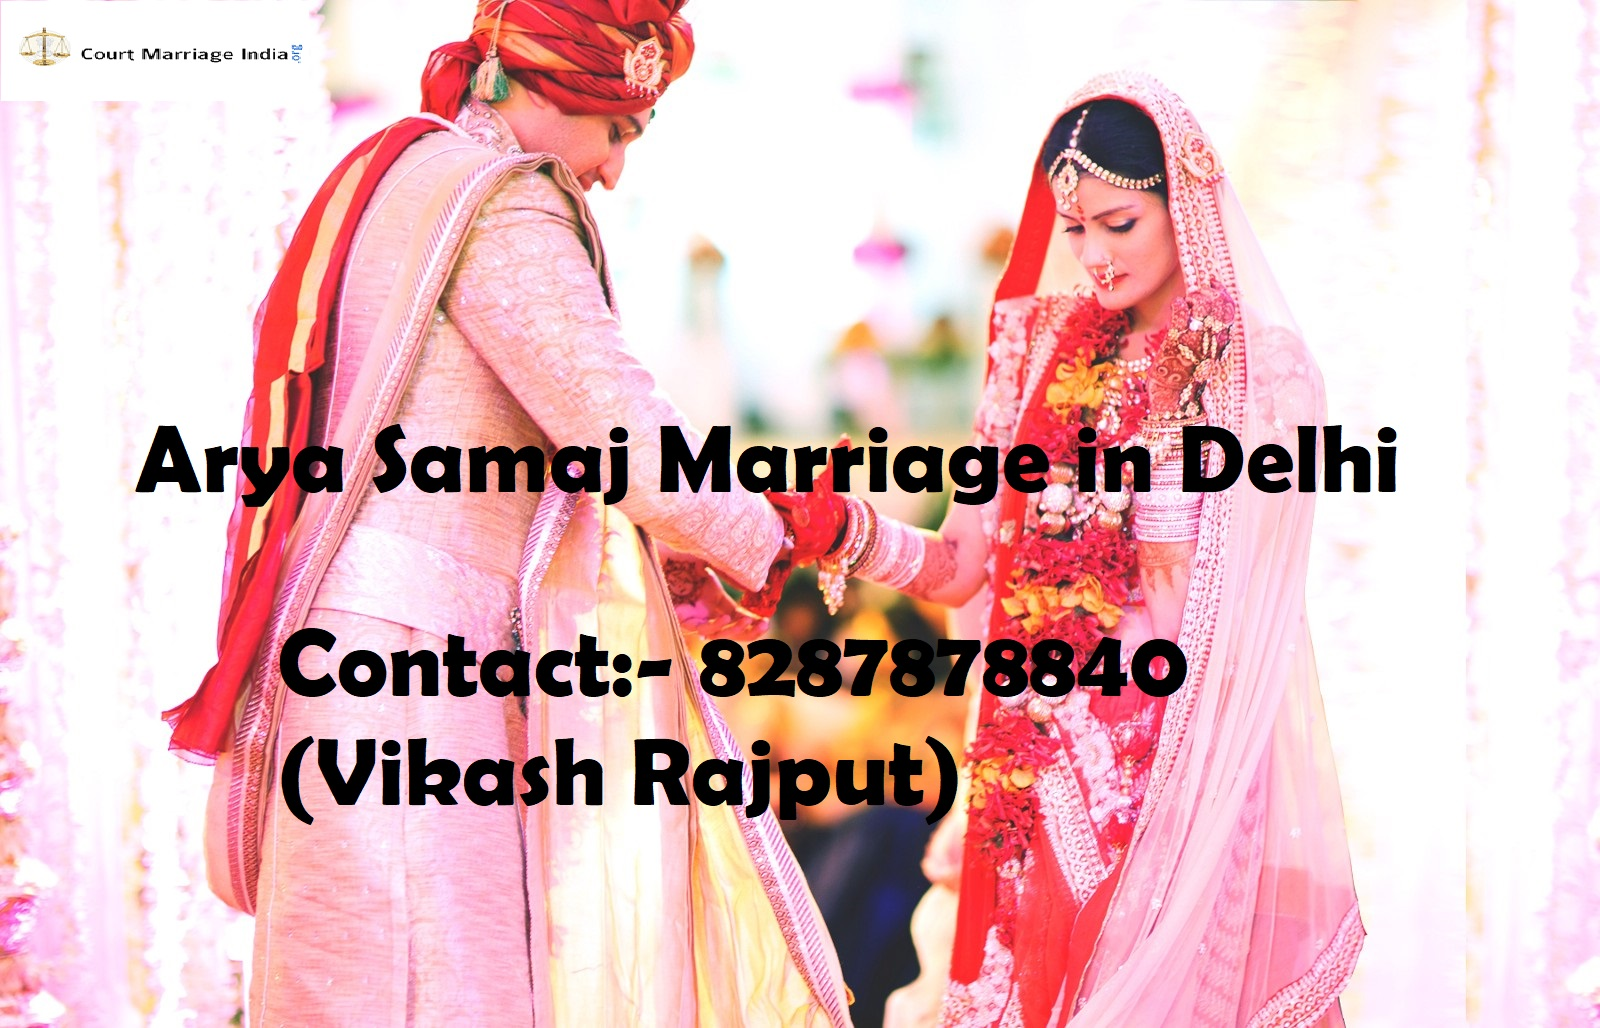 Find The Best Arya Samaj Marriage in Delhi